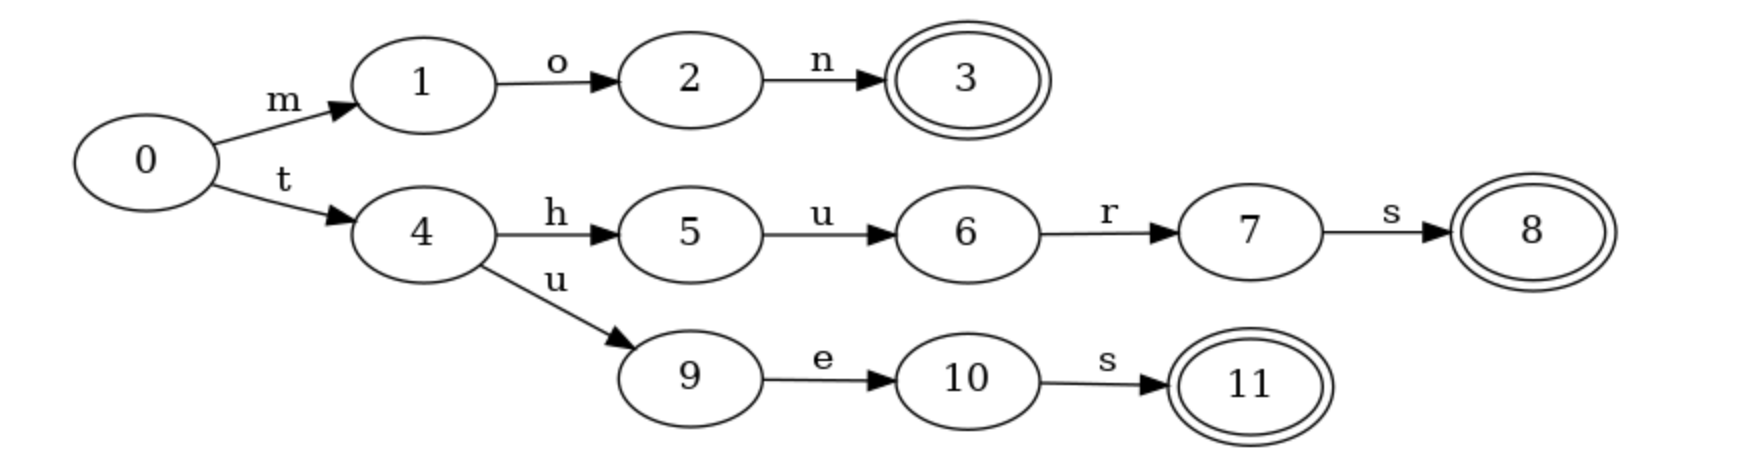 A prefix trie that accepts several different words